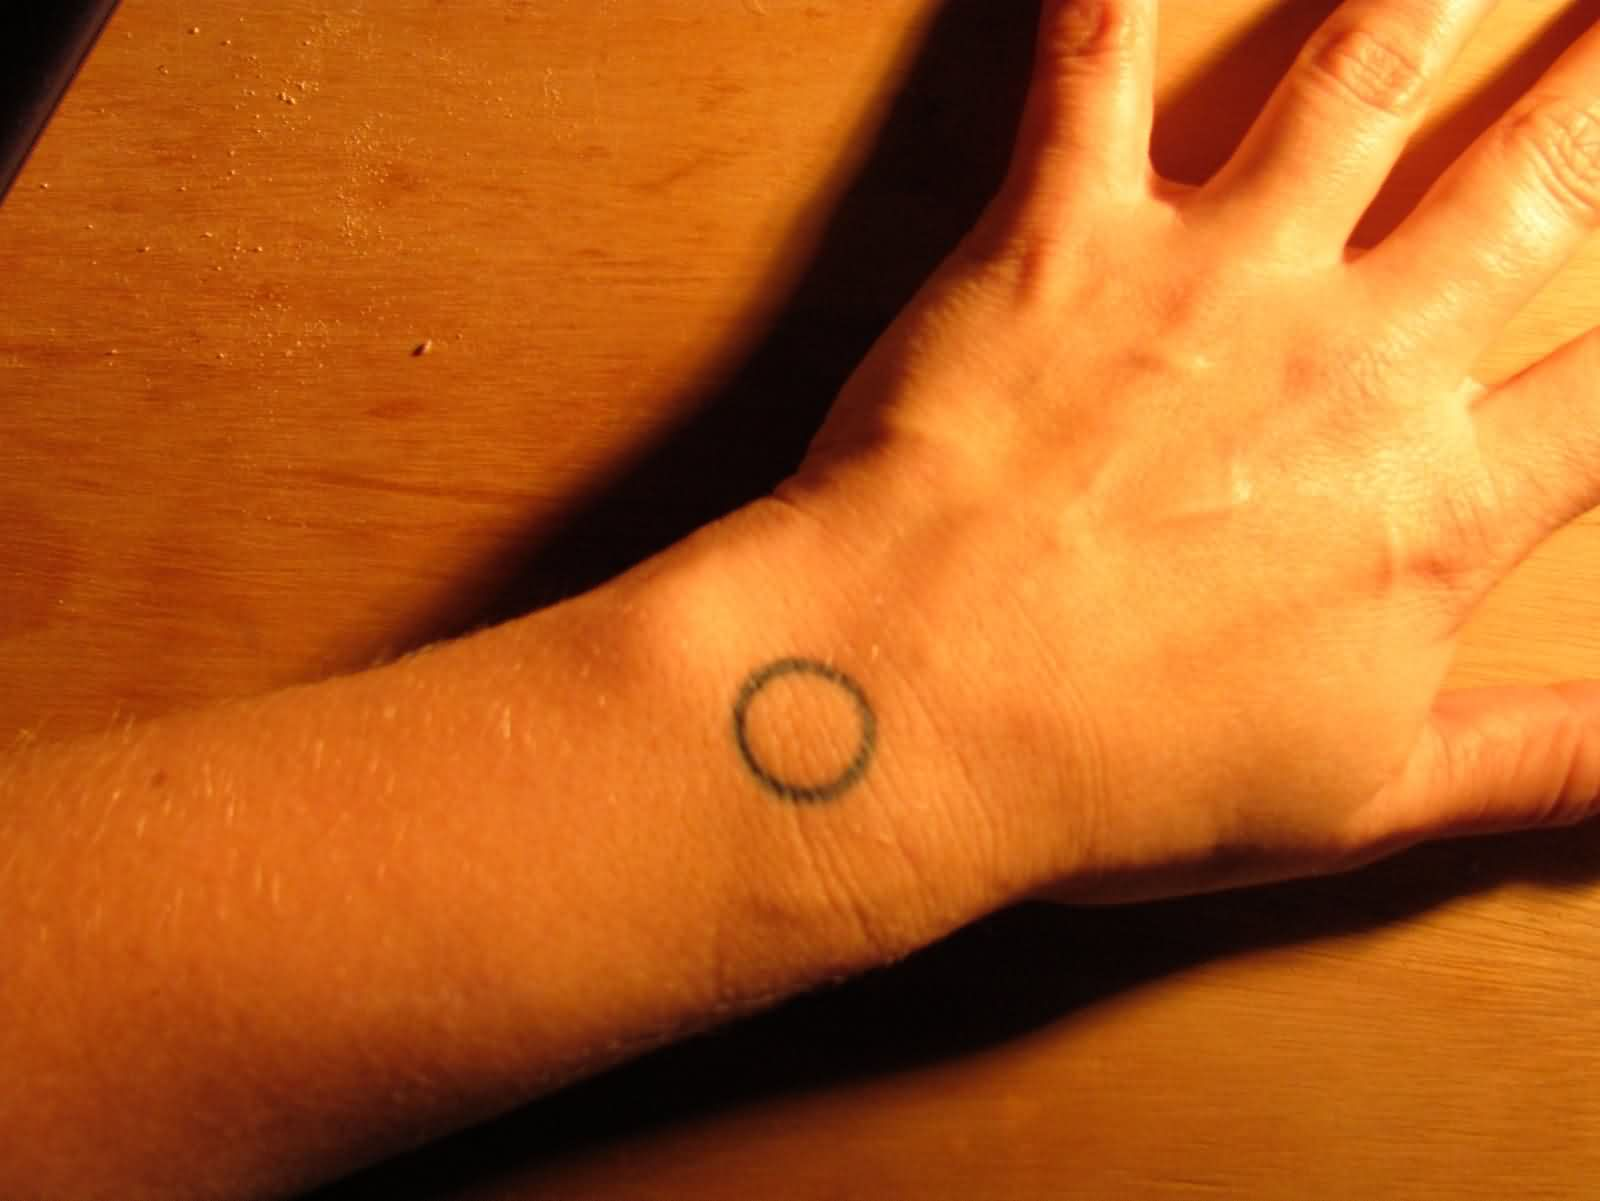 Tiny Circle Tattoo For Wrist